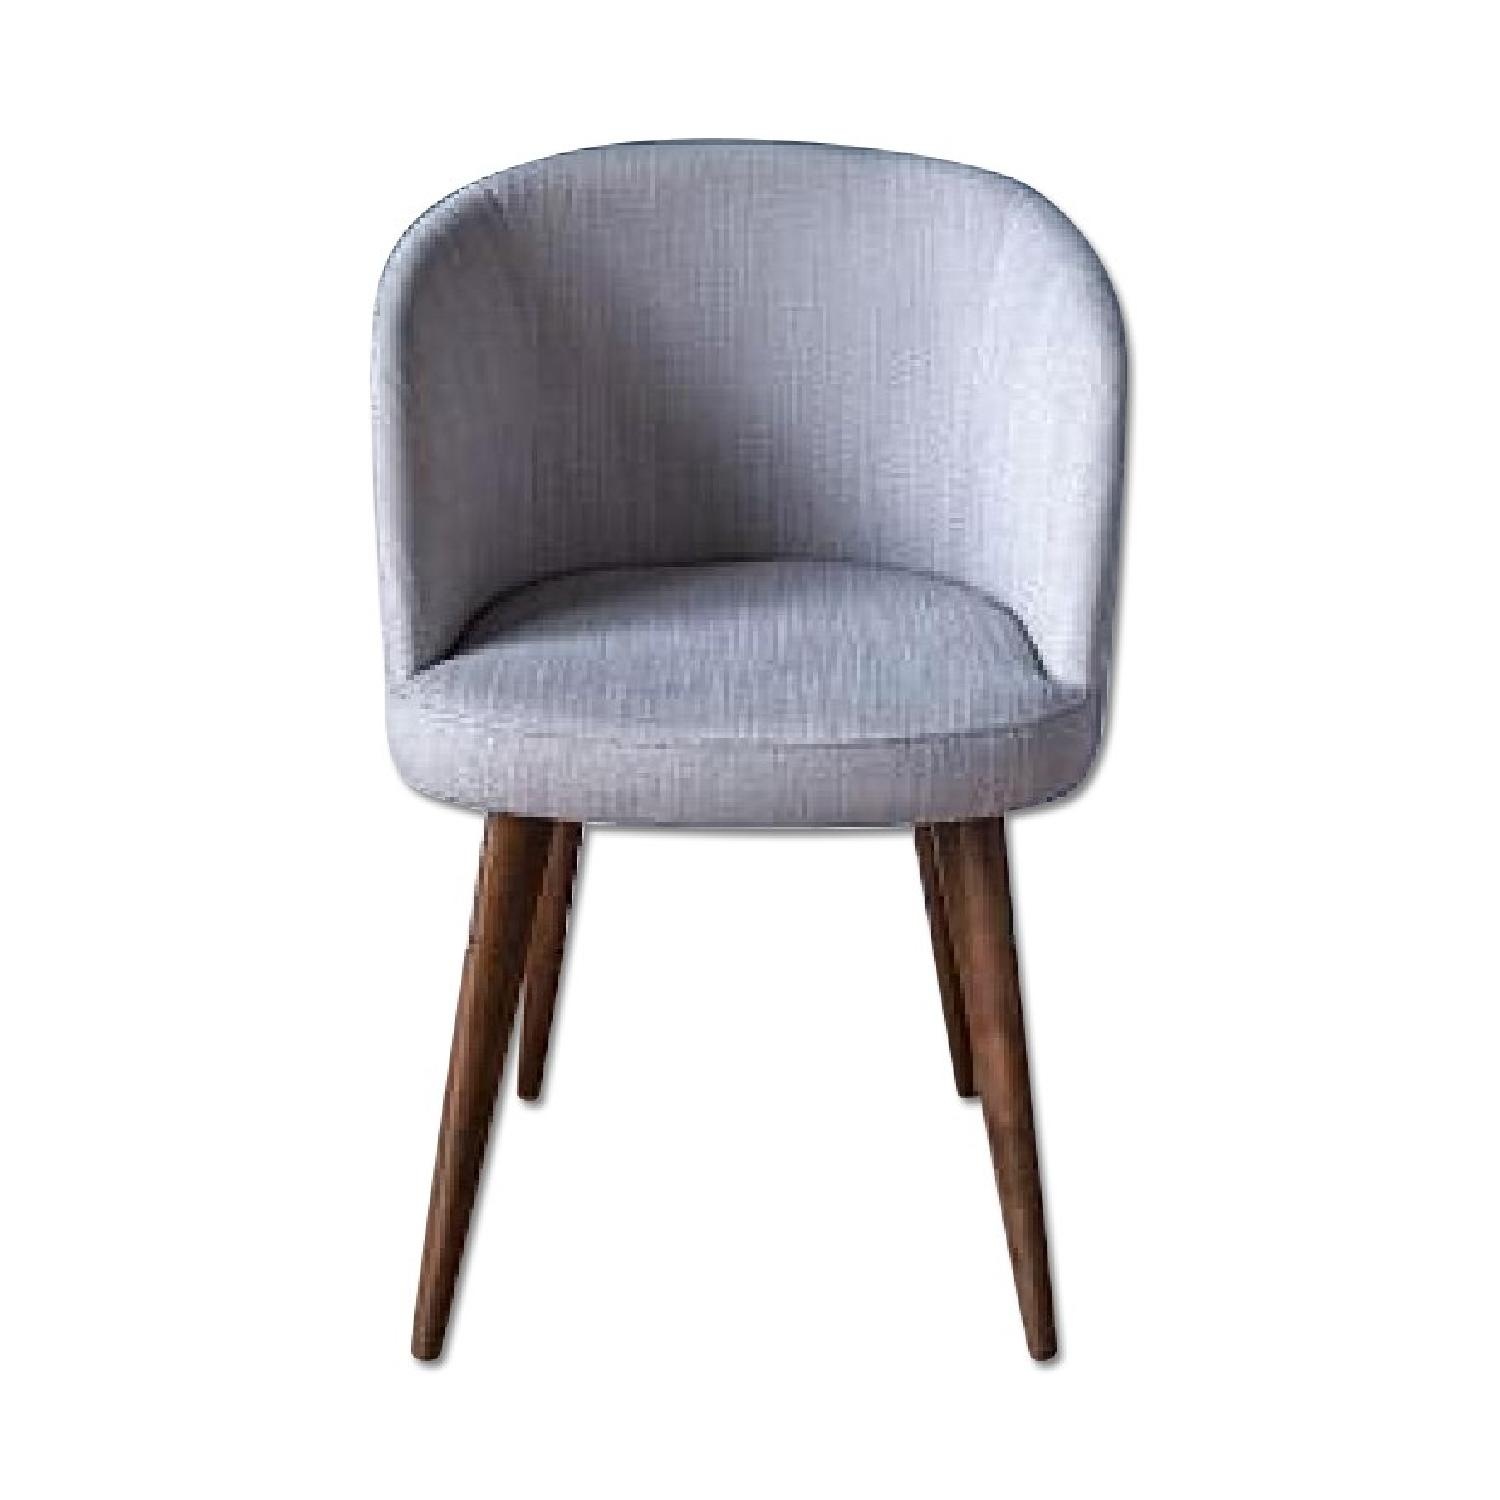 basket weave dining chairs ball chair amazon west elm abraza in gray pecan